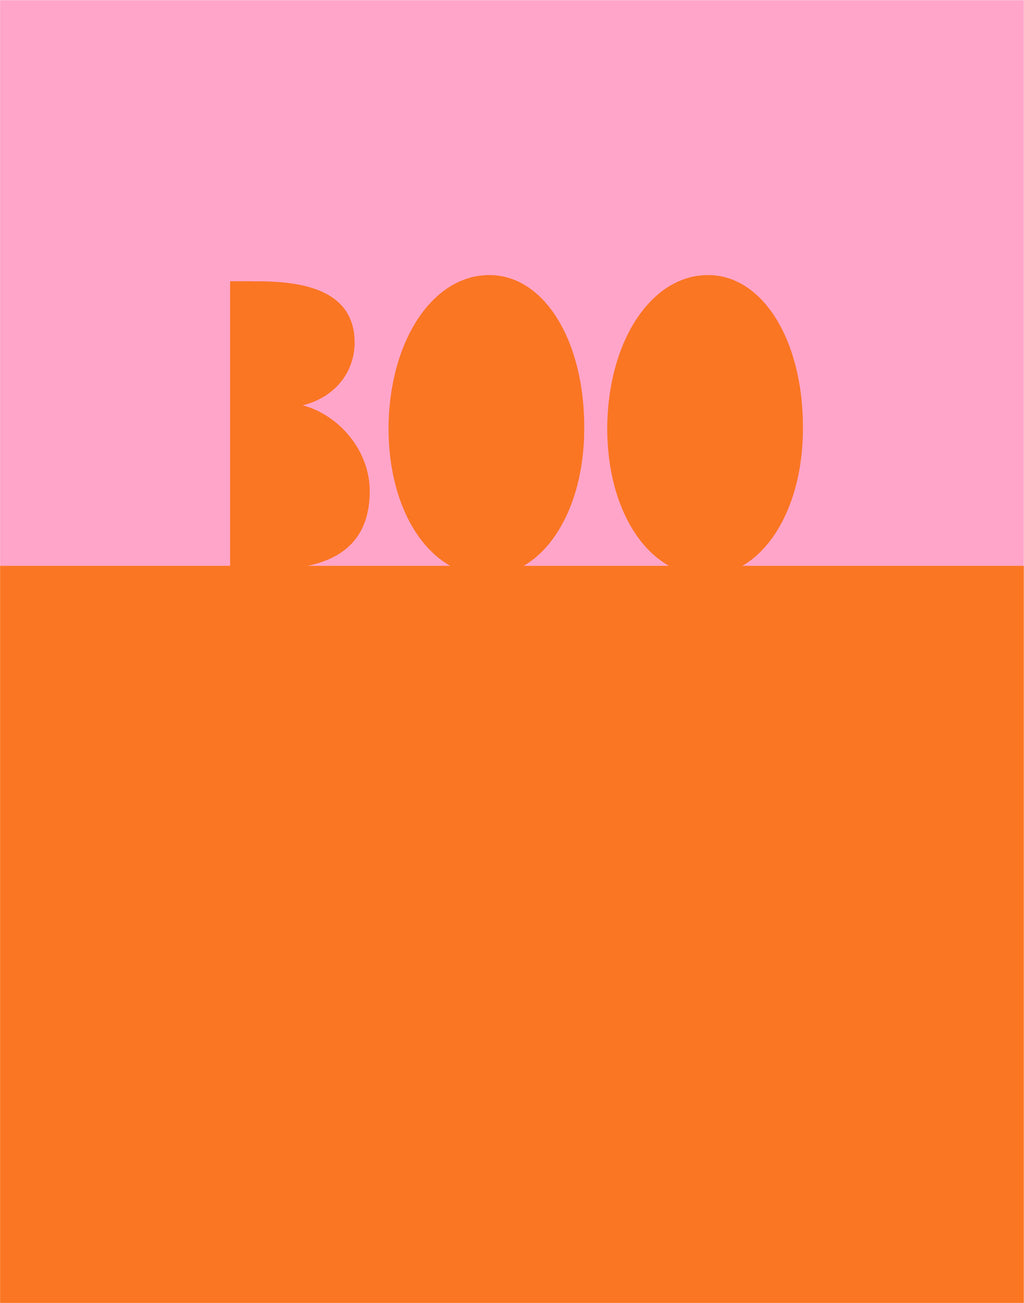 FREE DOWNLOAD: Boo